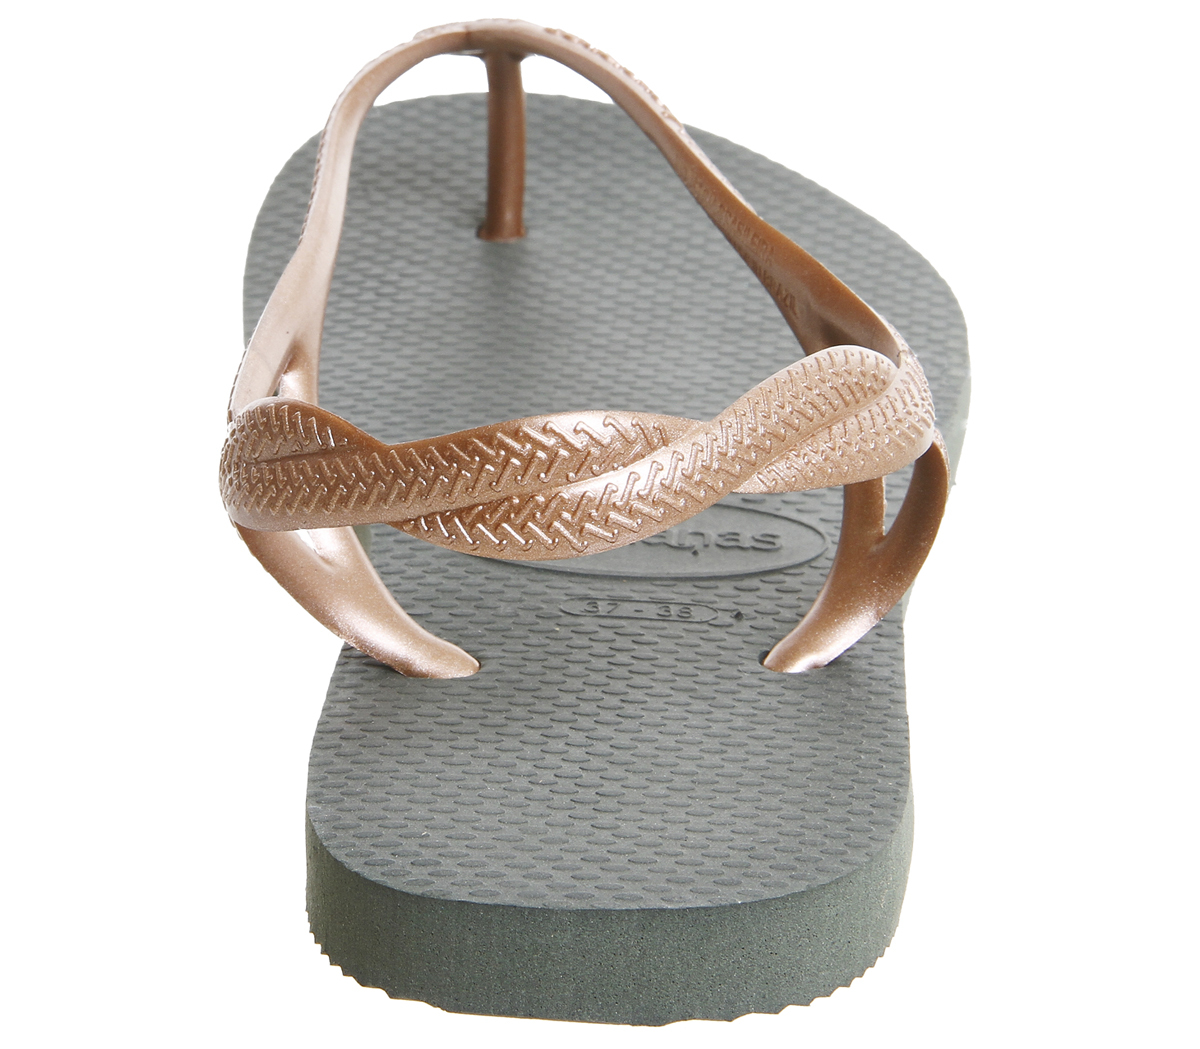 bdb9eaa9446a Womens-Havaianas-Luna-Sandals-Olive-Rose-Gold-Sandals thumbnail